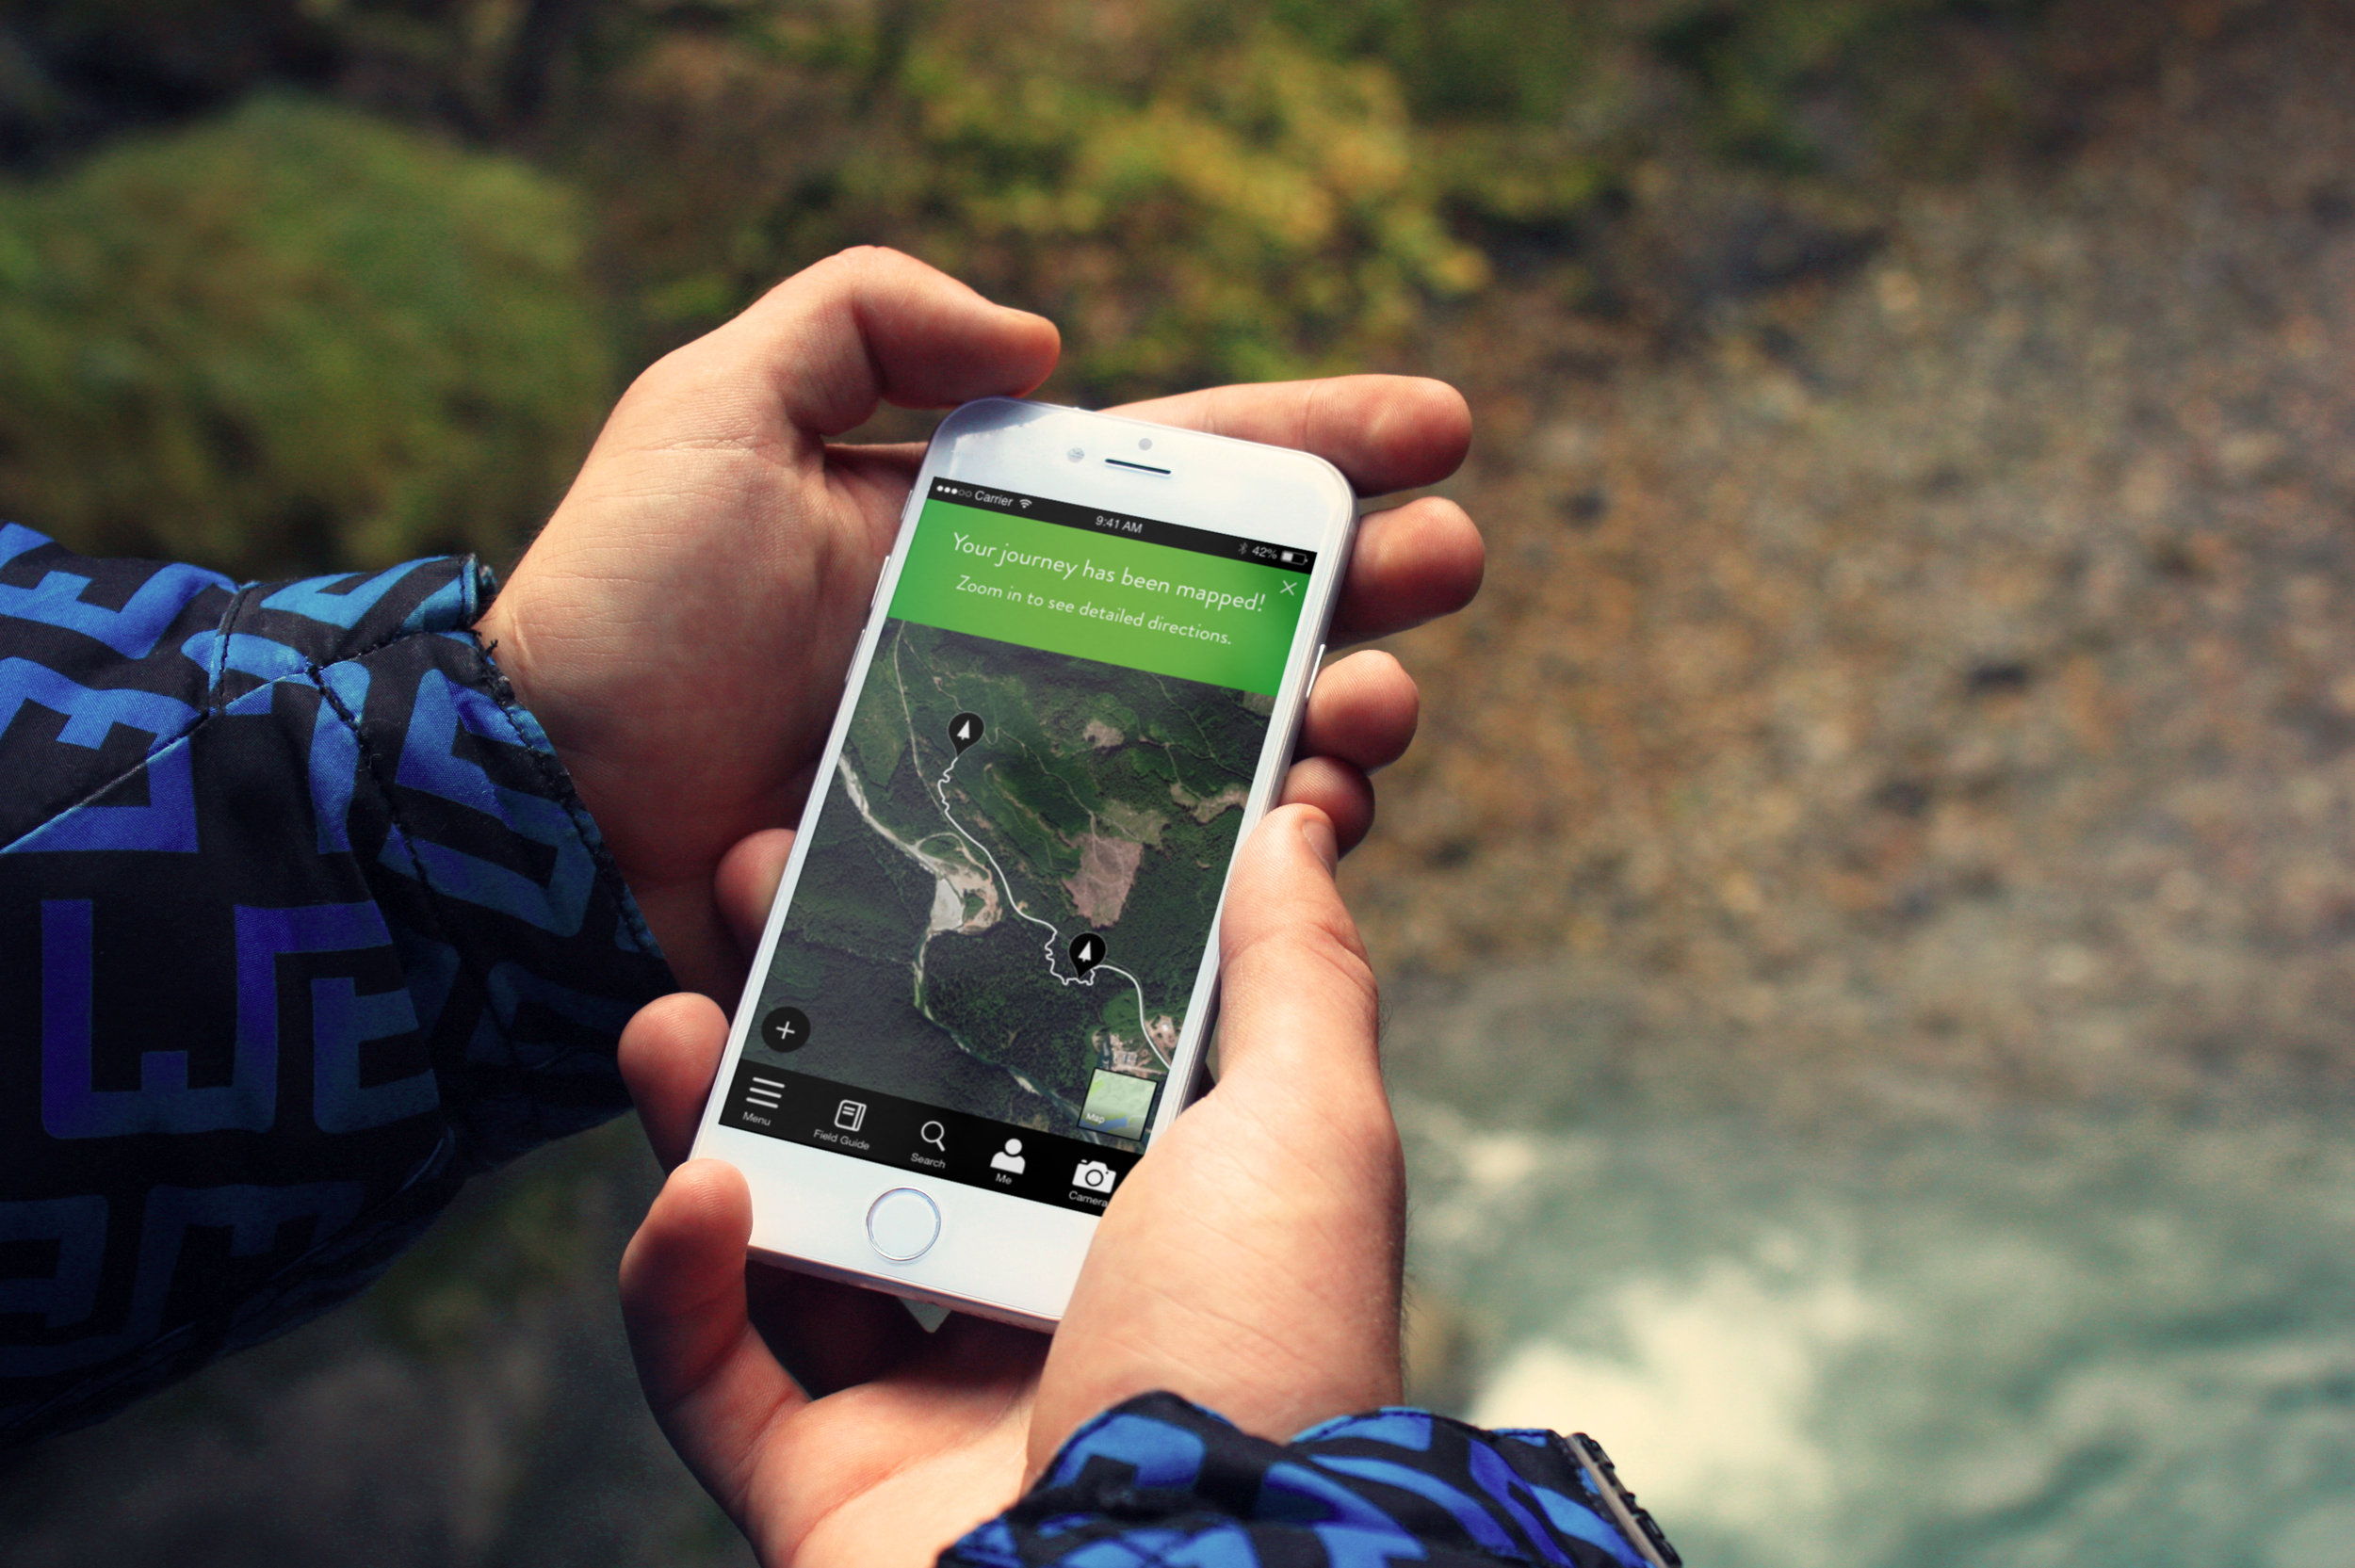 The Big Tree app allows users to identify, locate and visit the largest and oldest trees in BC, collecting points and learning about the ancient beauties along the way.